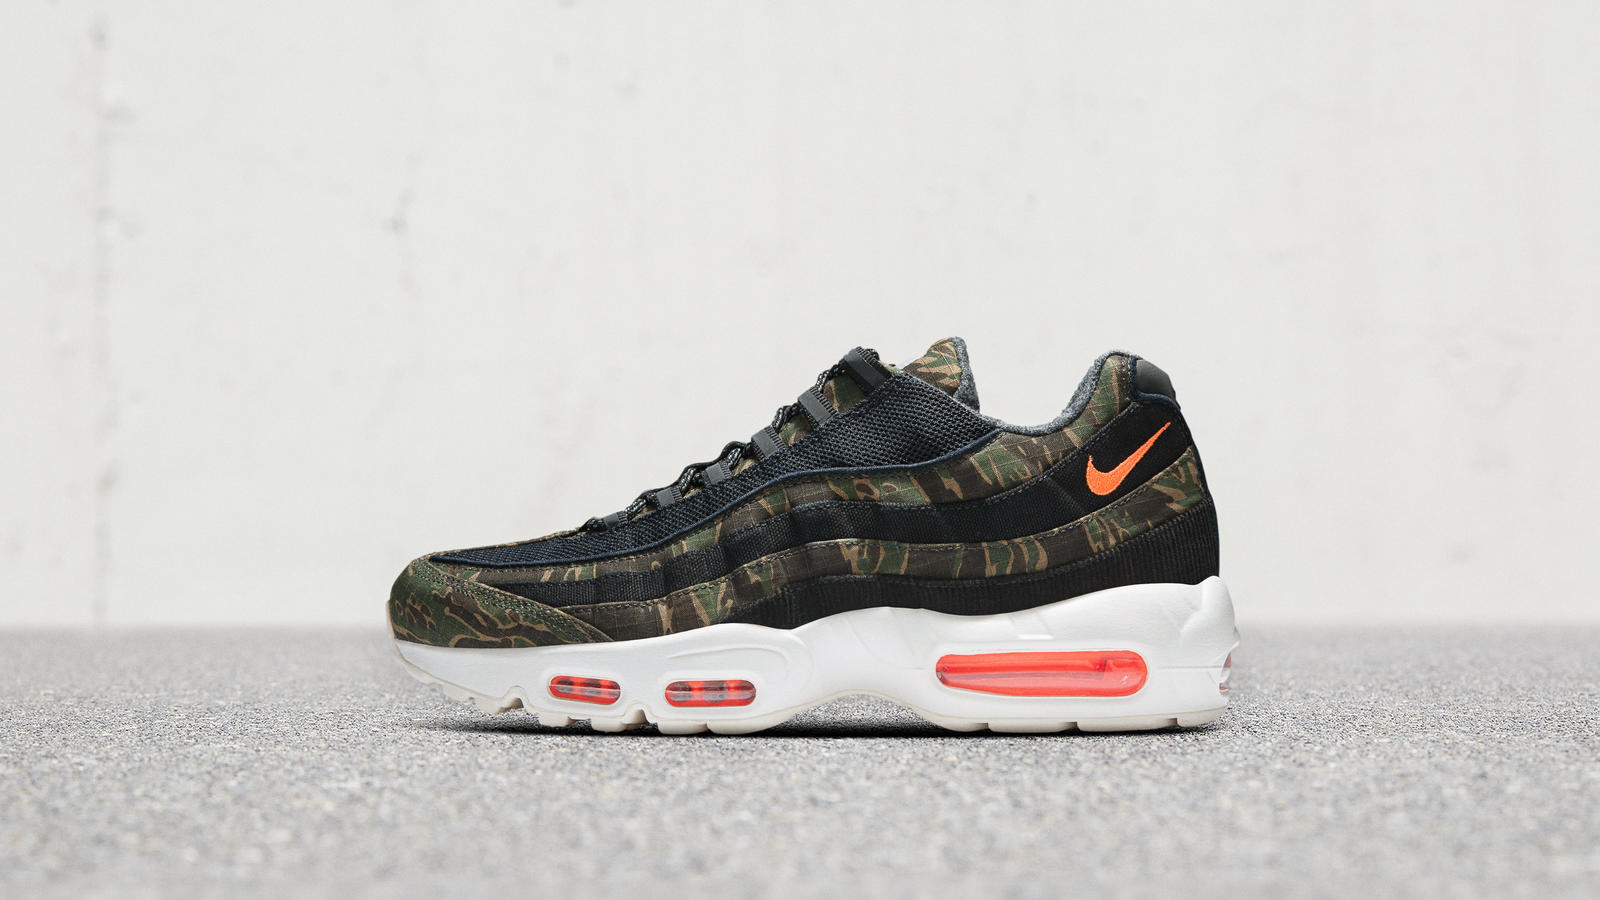 03_FeaturedFootwear_NSW_NikexCarhartt_10.12.18-690_hd_1600